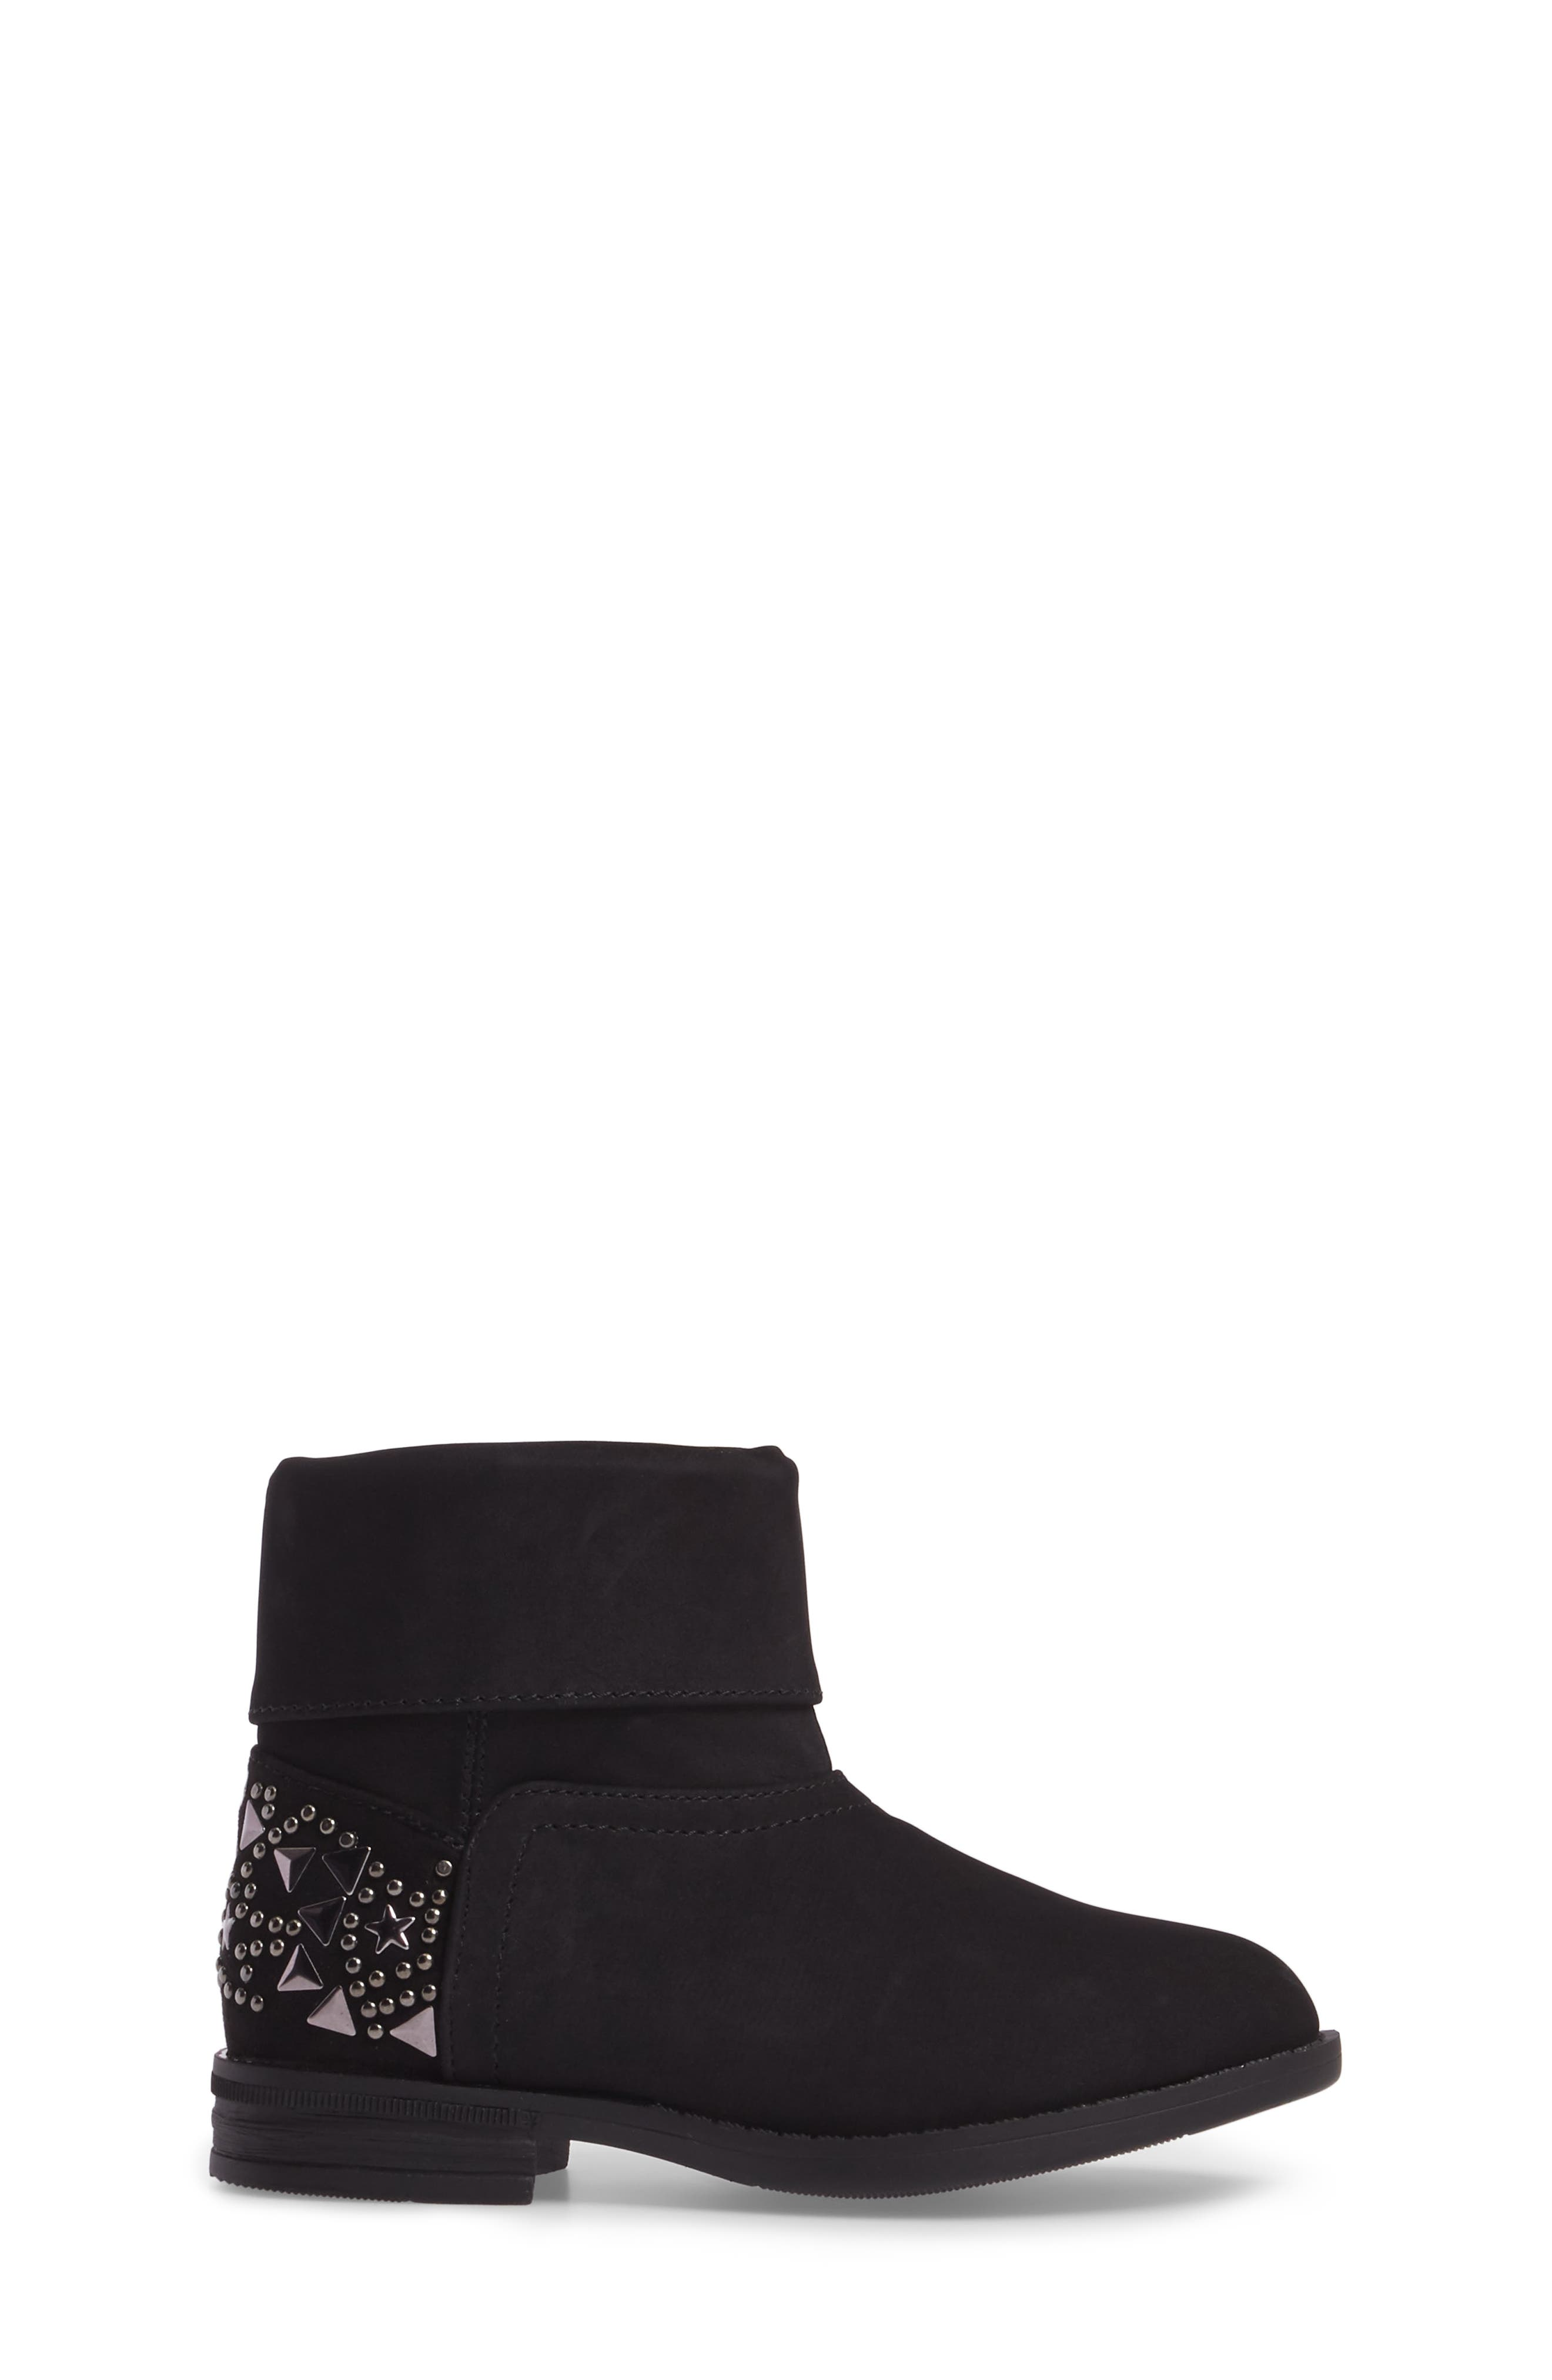 Wild Star Studded Bootie,                             Alternate thumbnail 3, color,                             001